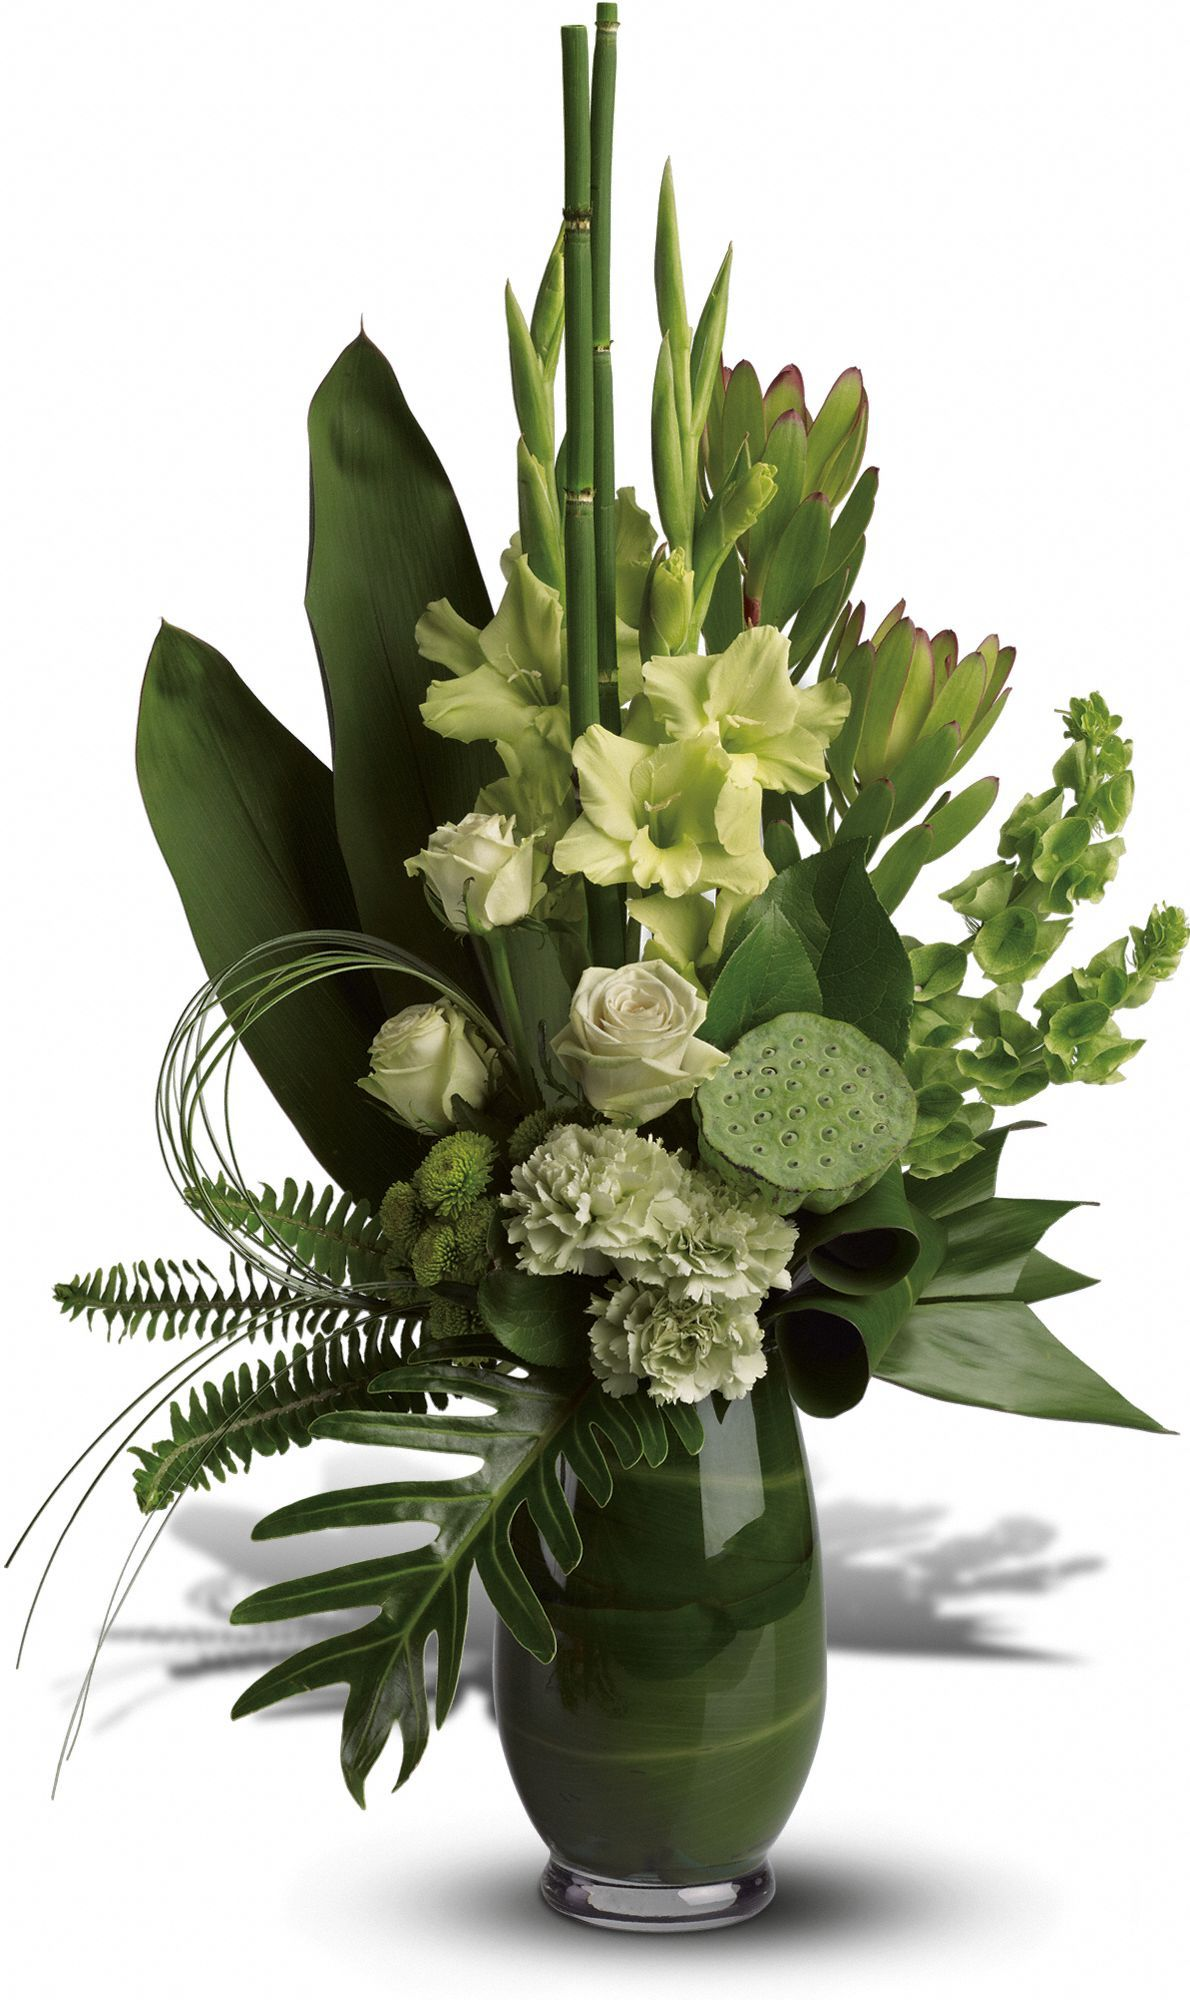 Limelight bouquet flowers limelight flower bouquet teleflora limelight bouquet flowers limelight flower bouquet teleflora izmirmasajfo